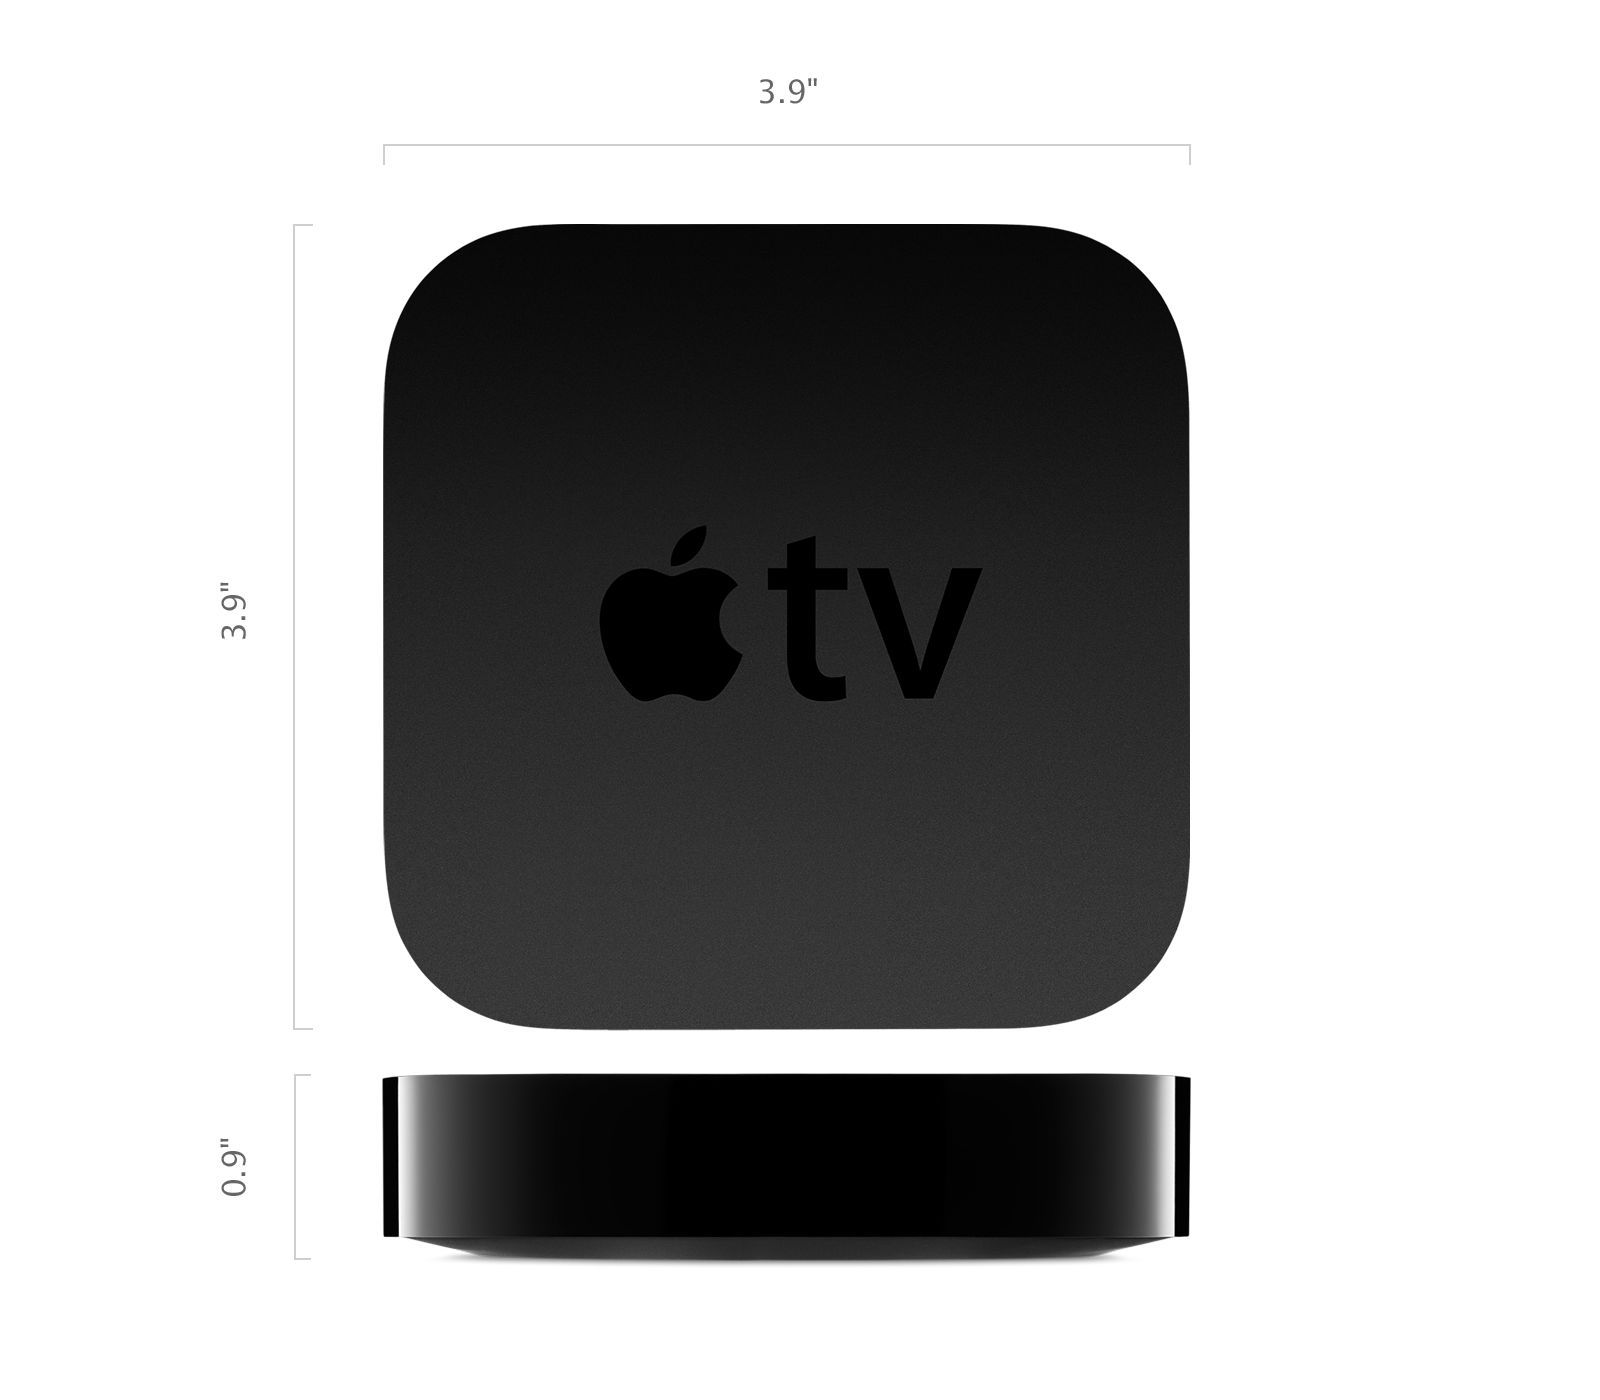 Use Apple TV AirPlay with iPad as a Smart Board. AirPlay